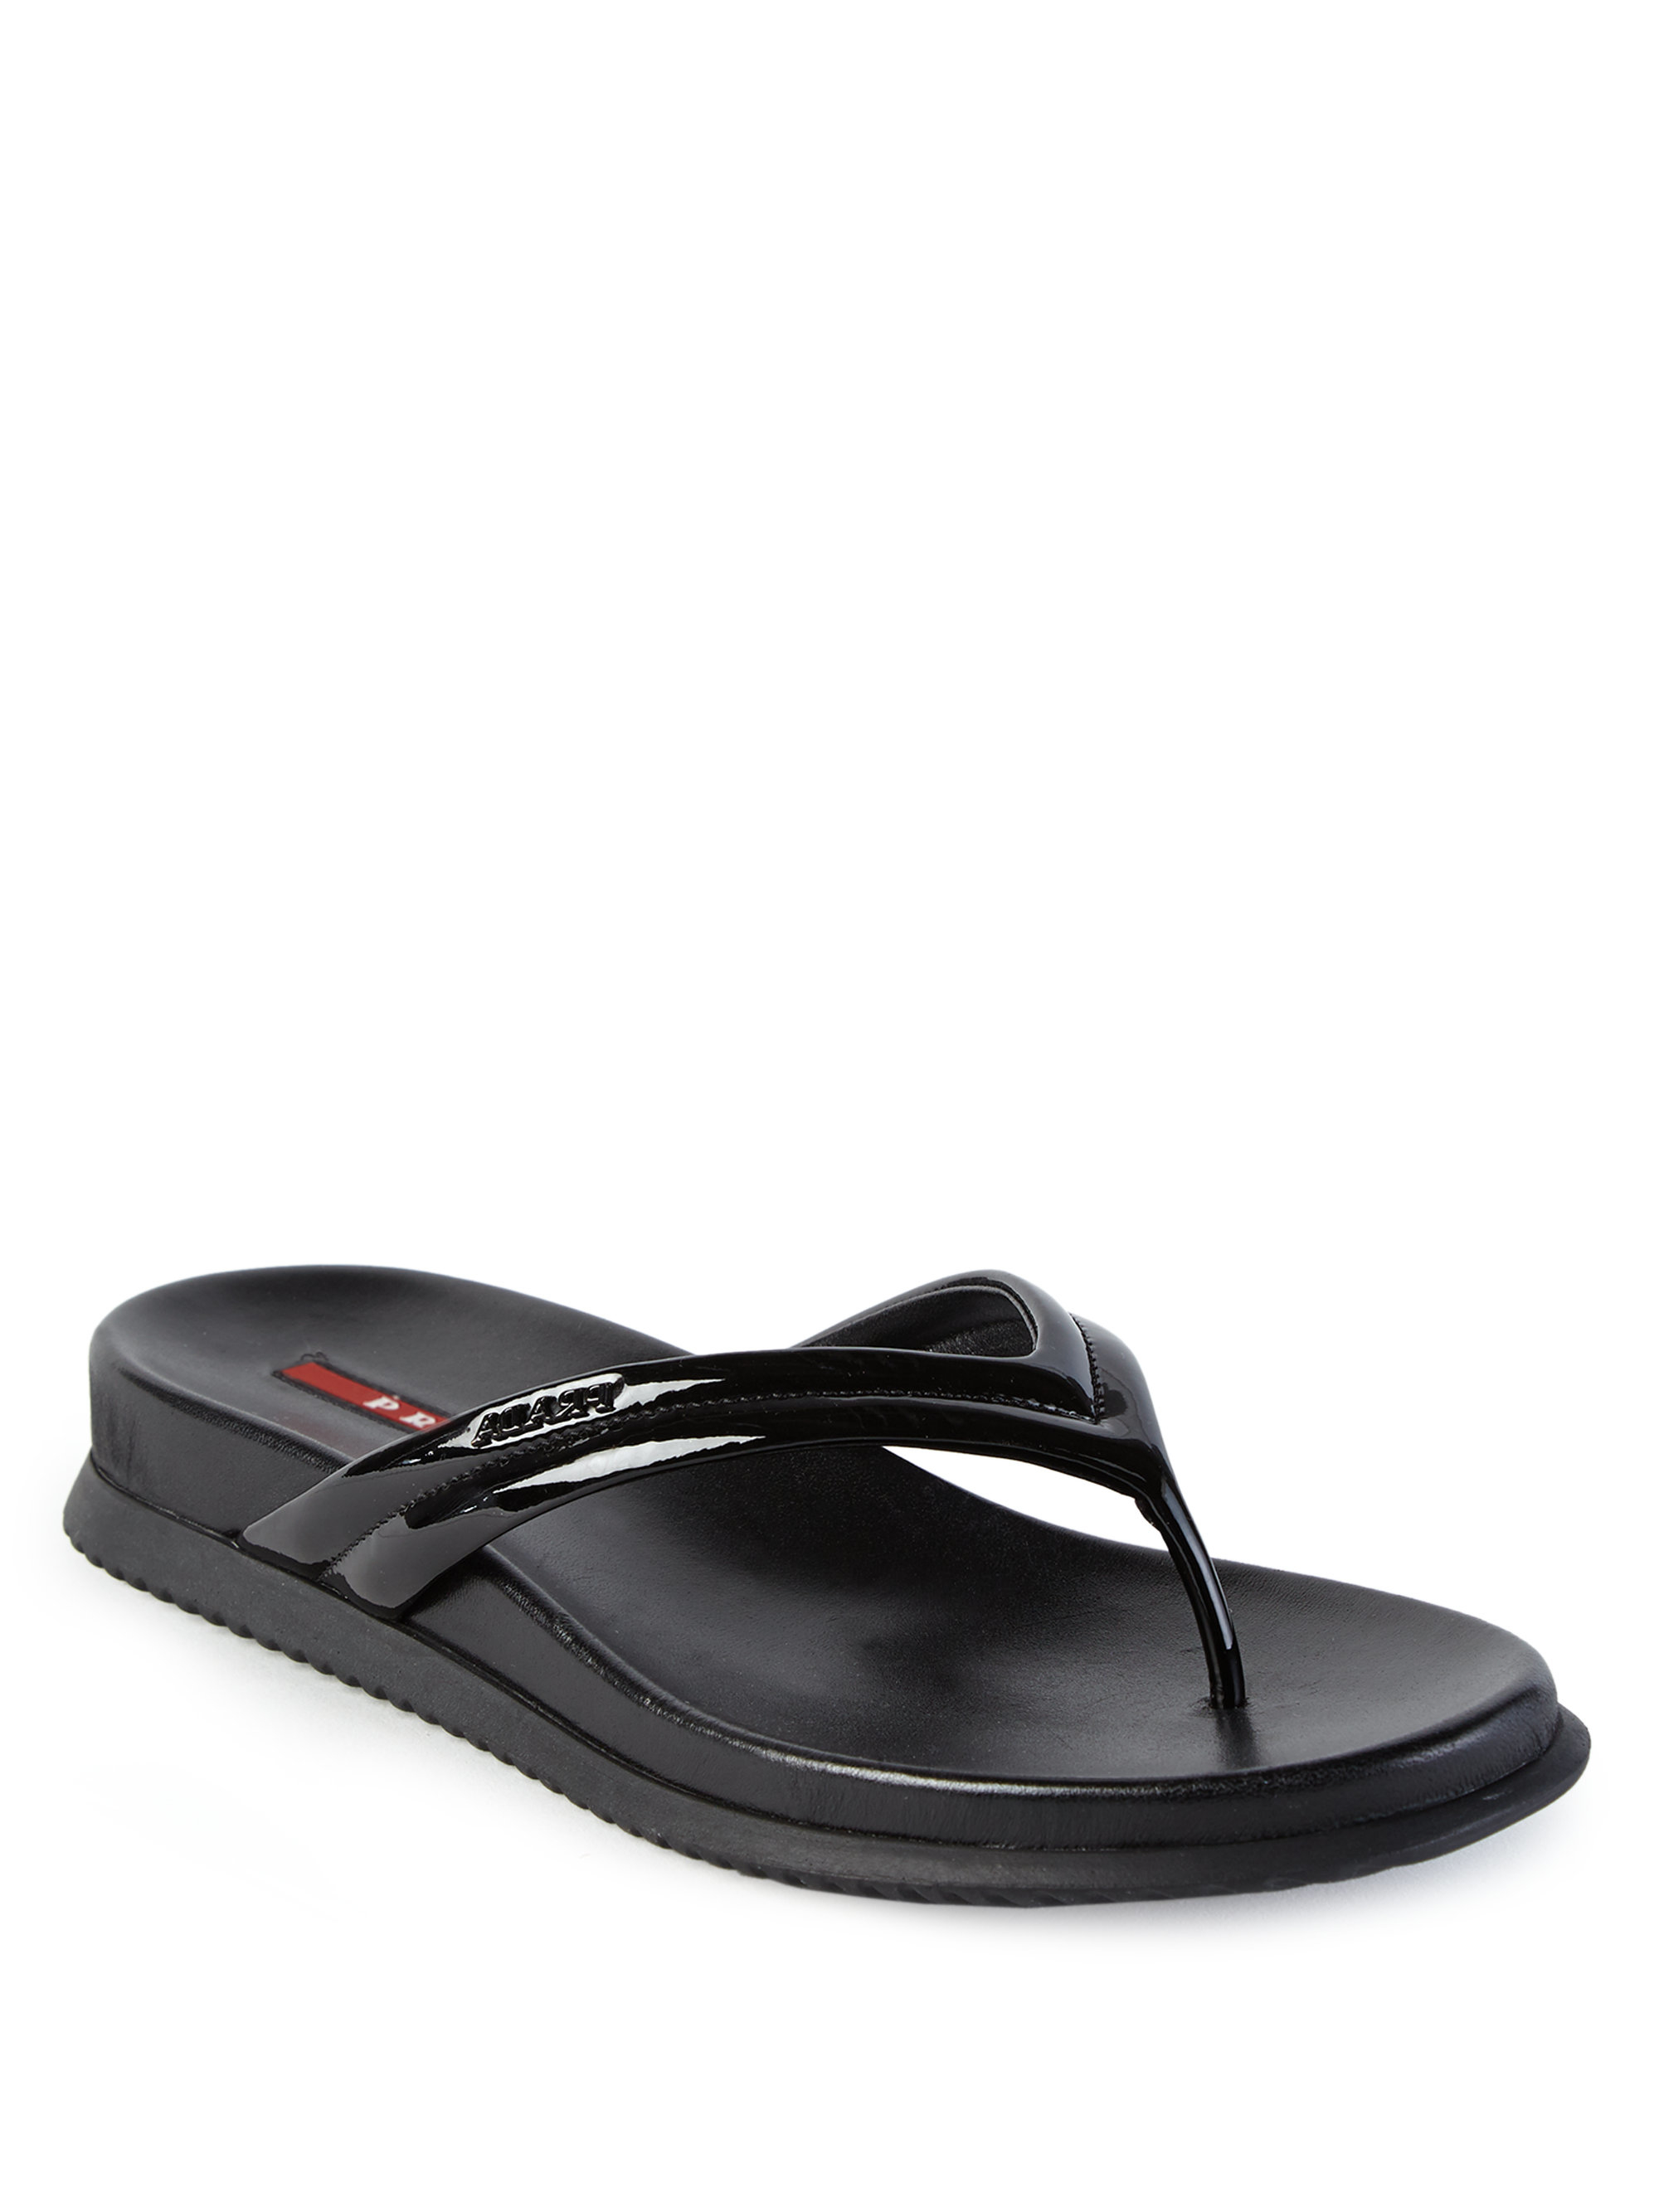 Lyst Prada Patent Leather Flip Flops In Black